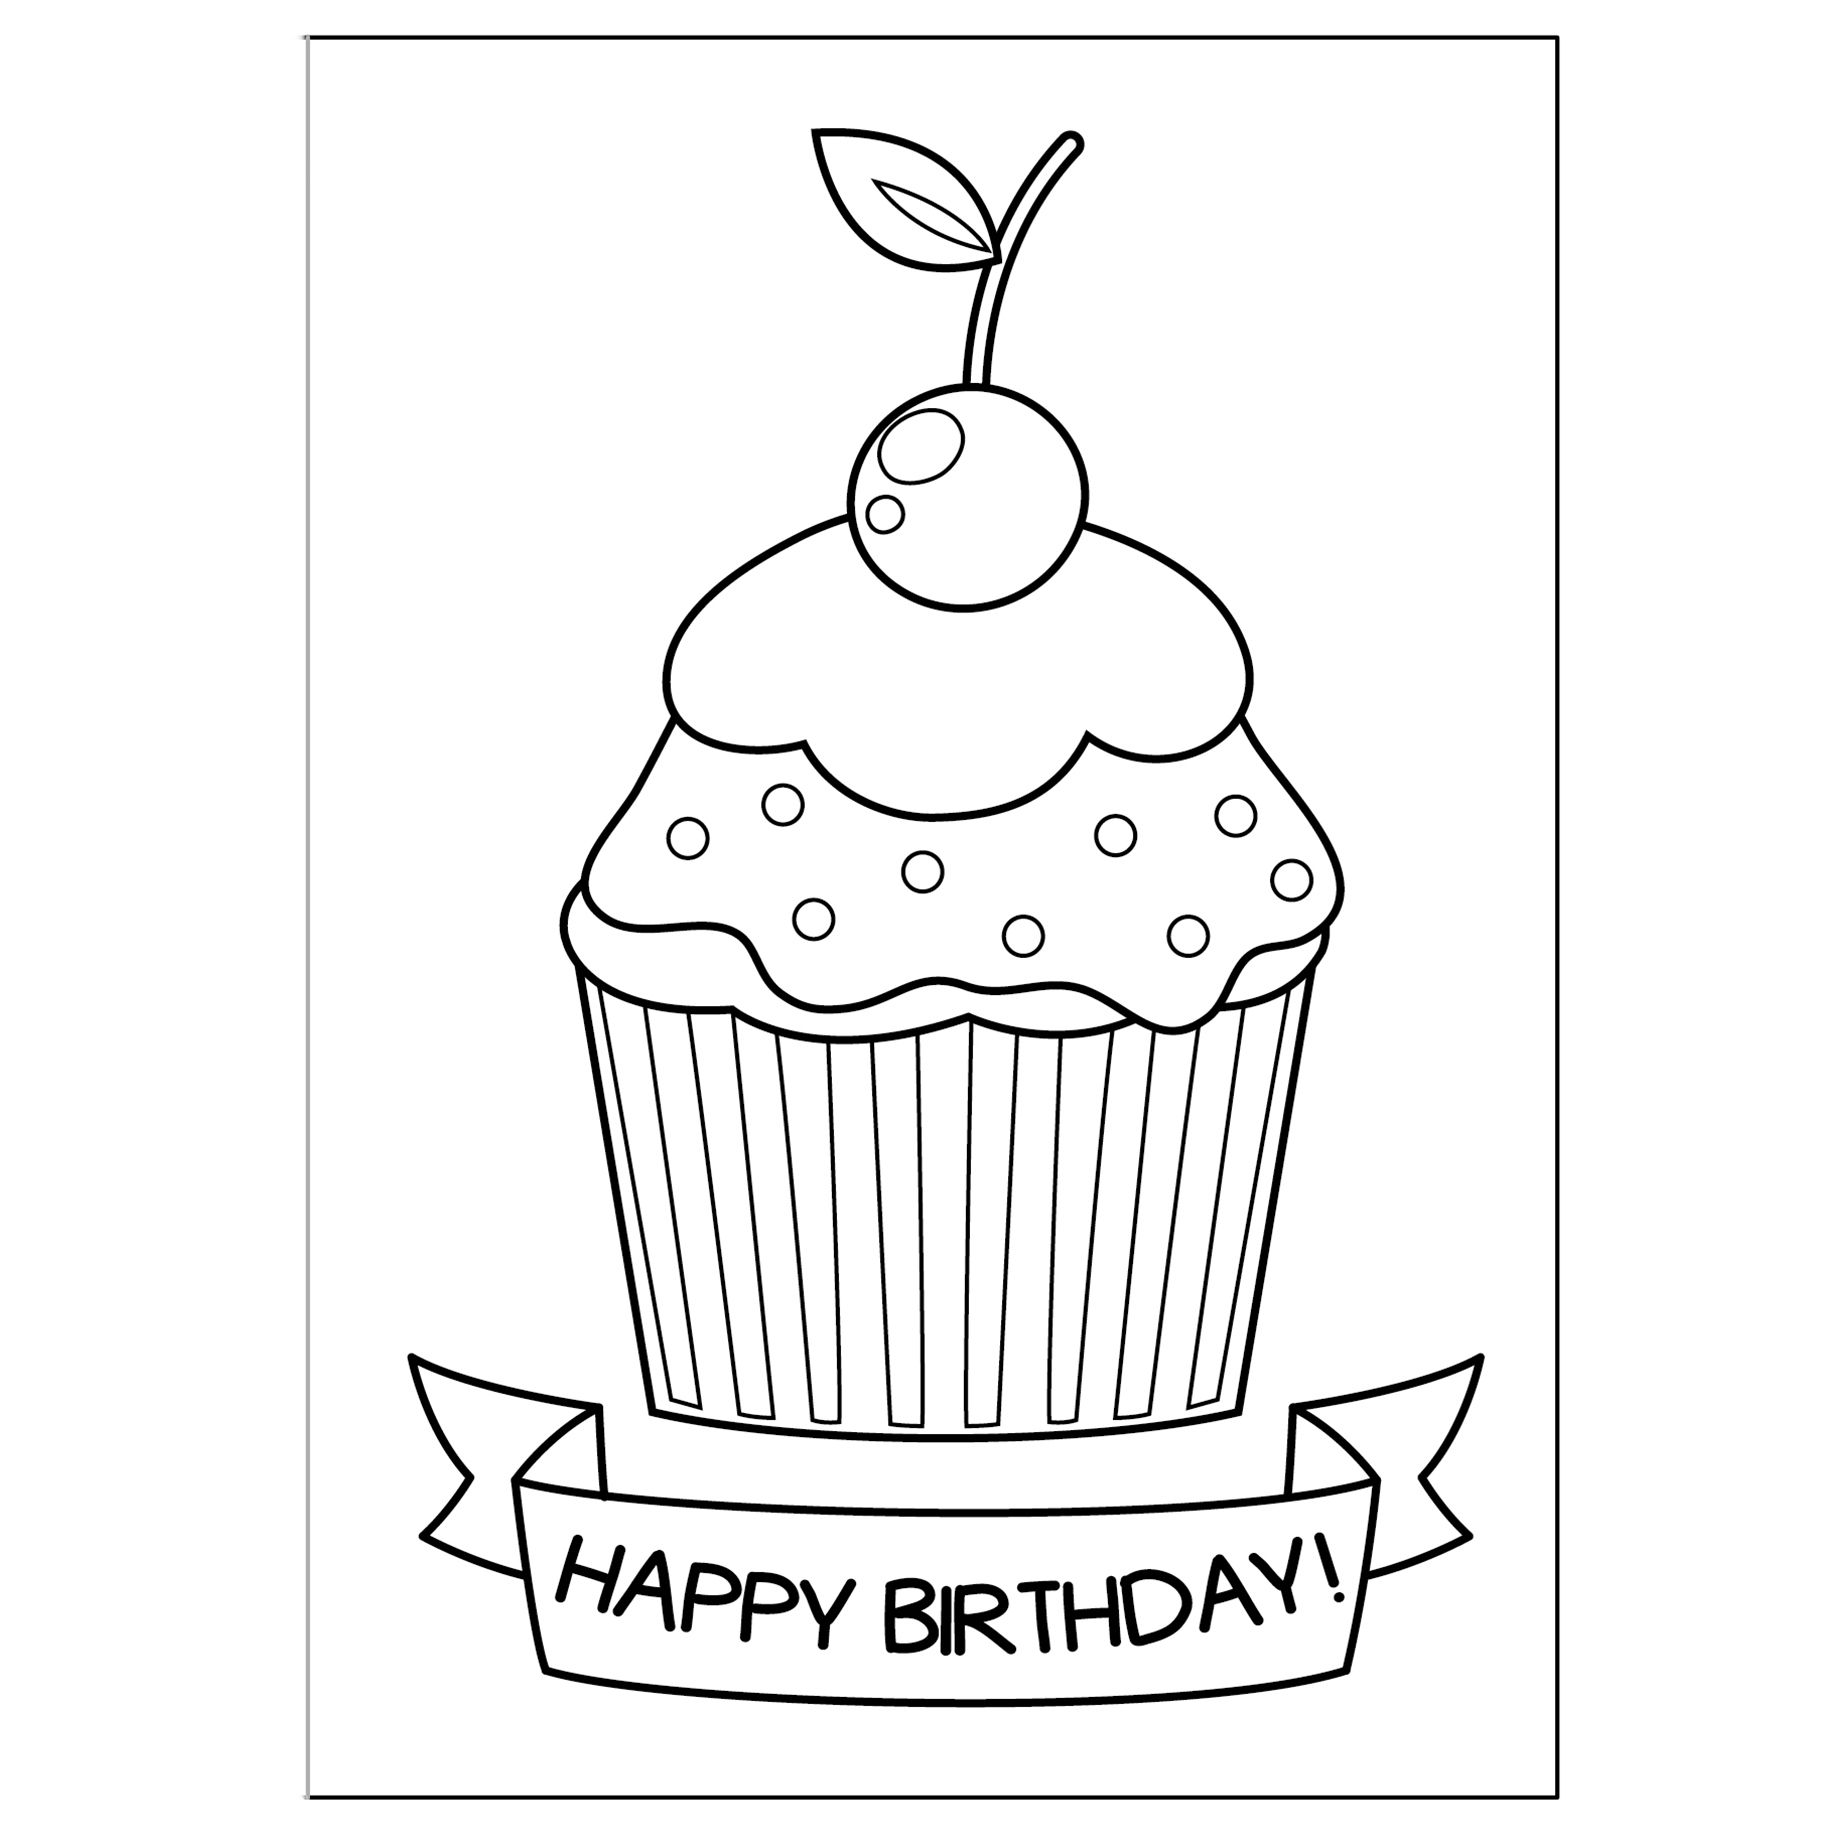 Cute Greeting Cards To Print And Color Coloring Pages Activities